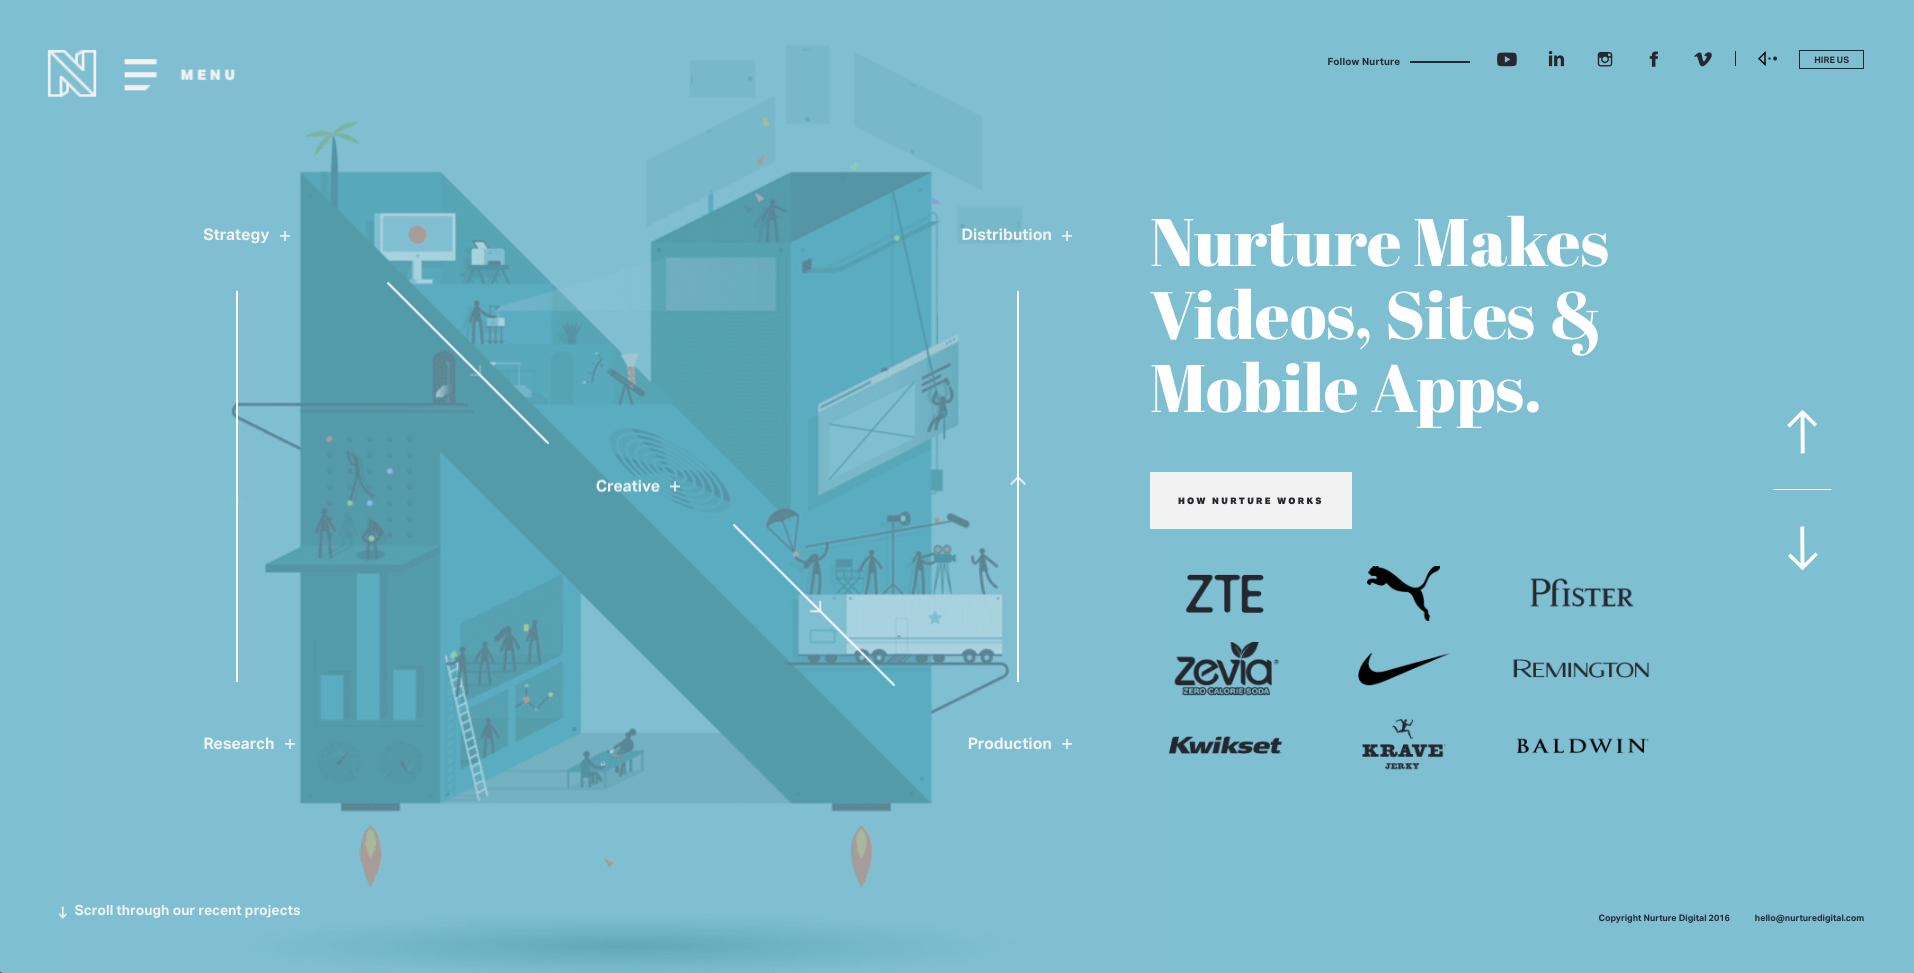 The header image of Nurture Digital's home page